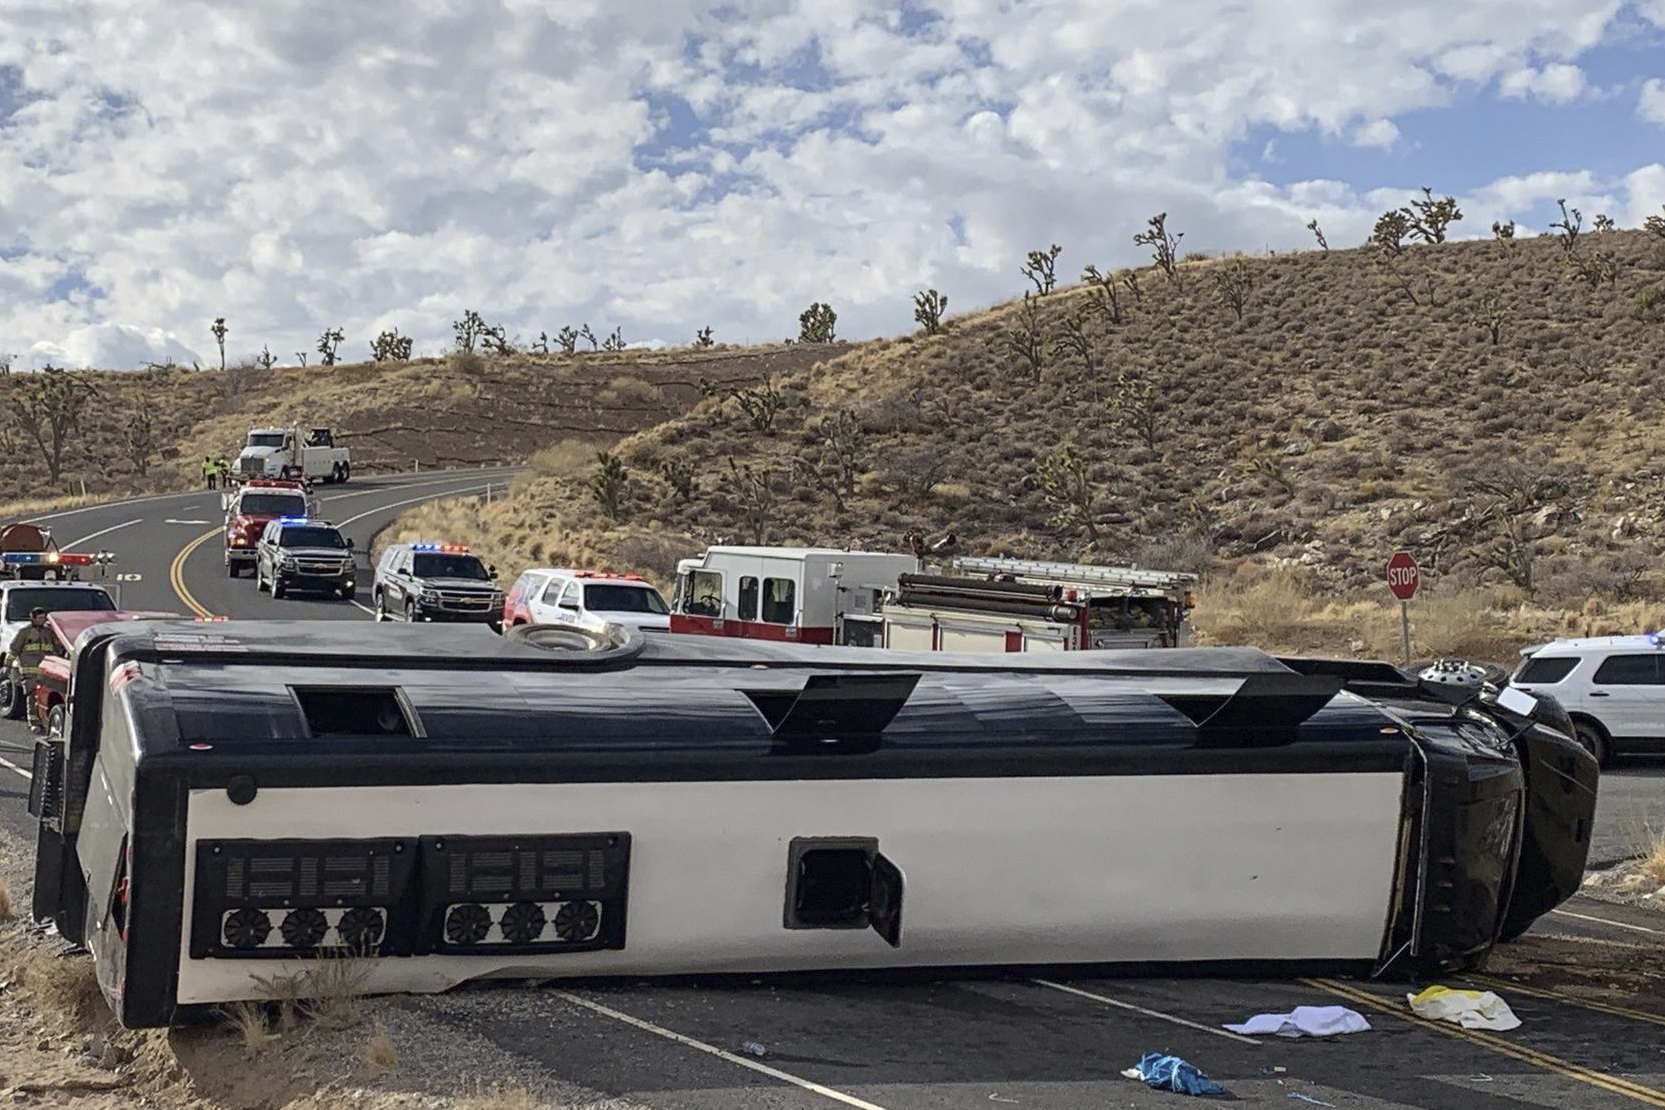 This photo provided by the Mohave County Sheriff's Office shows a Las Vegas-based tour that rolled over in northwestern Arizona on Friday, Jan. 22, 2021. (Mohave County Sheriff's Office via AP)